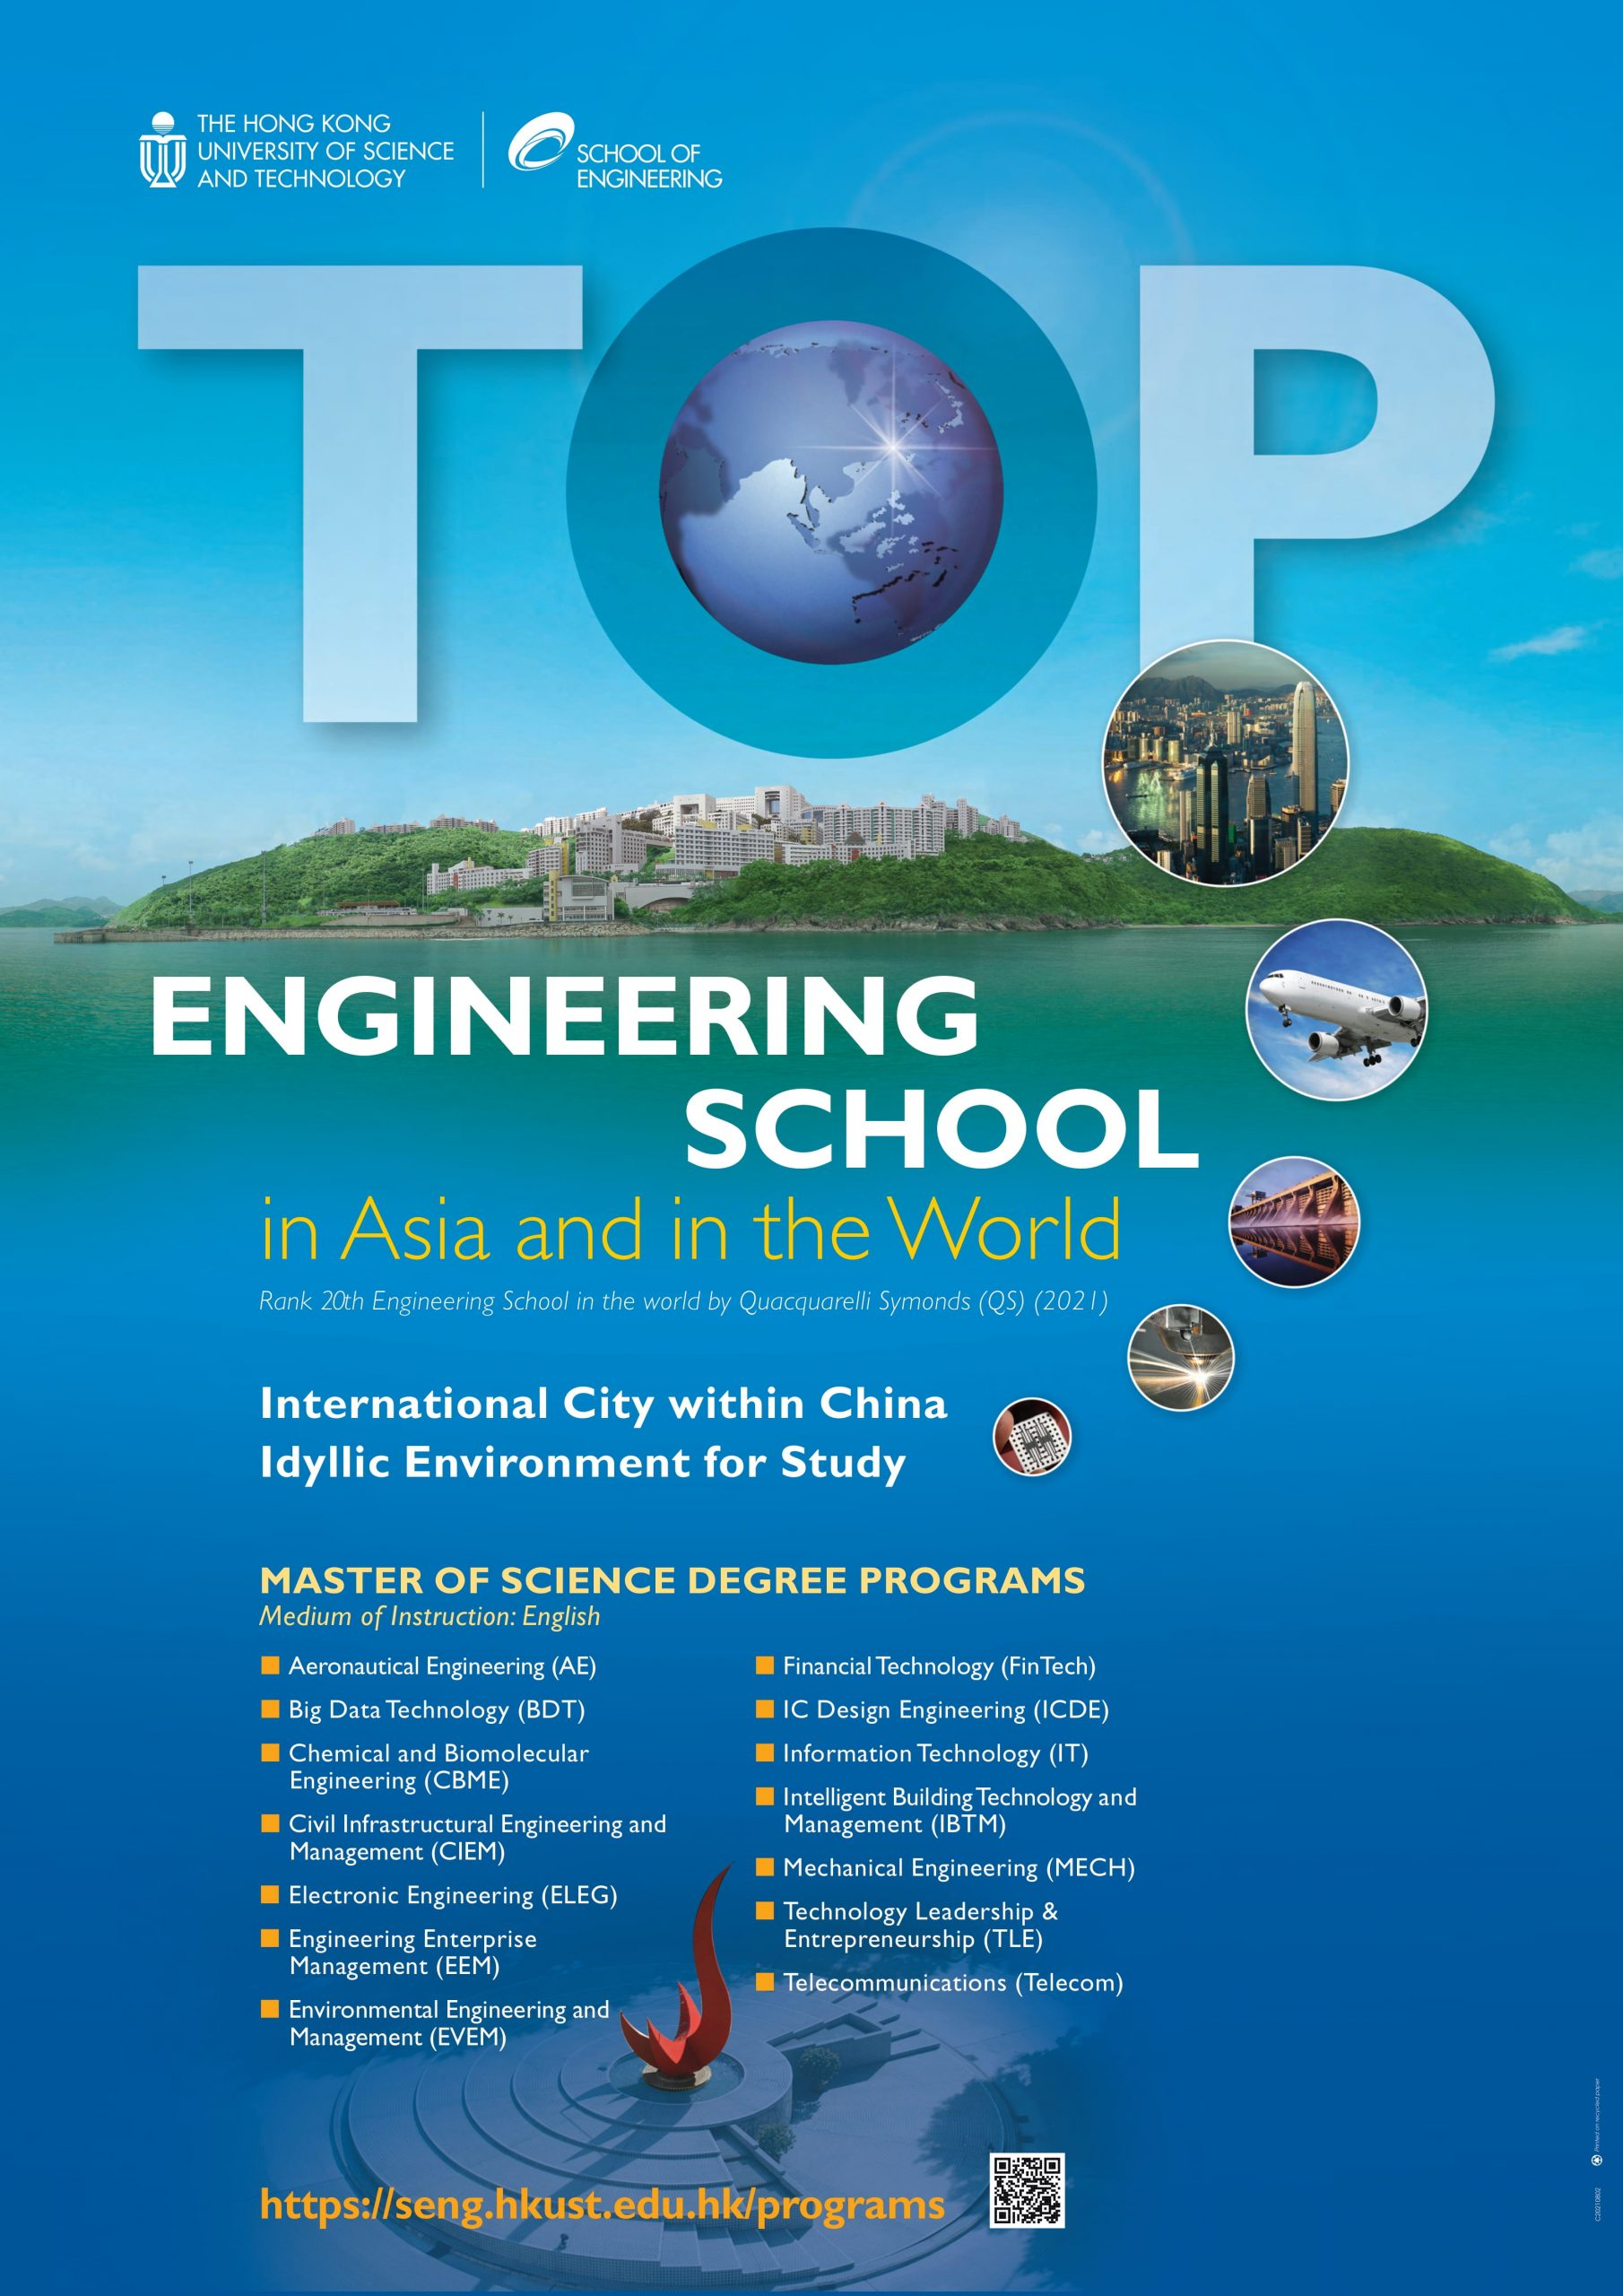 Master Programs (September 2022 intake) offered by The Hong Kong University of Science and Technology, Hong Kong